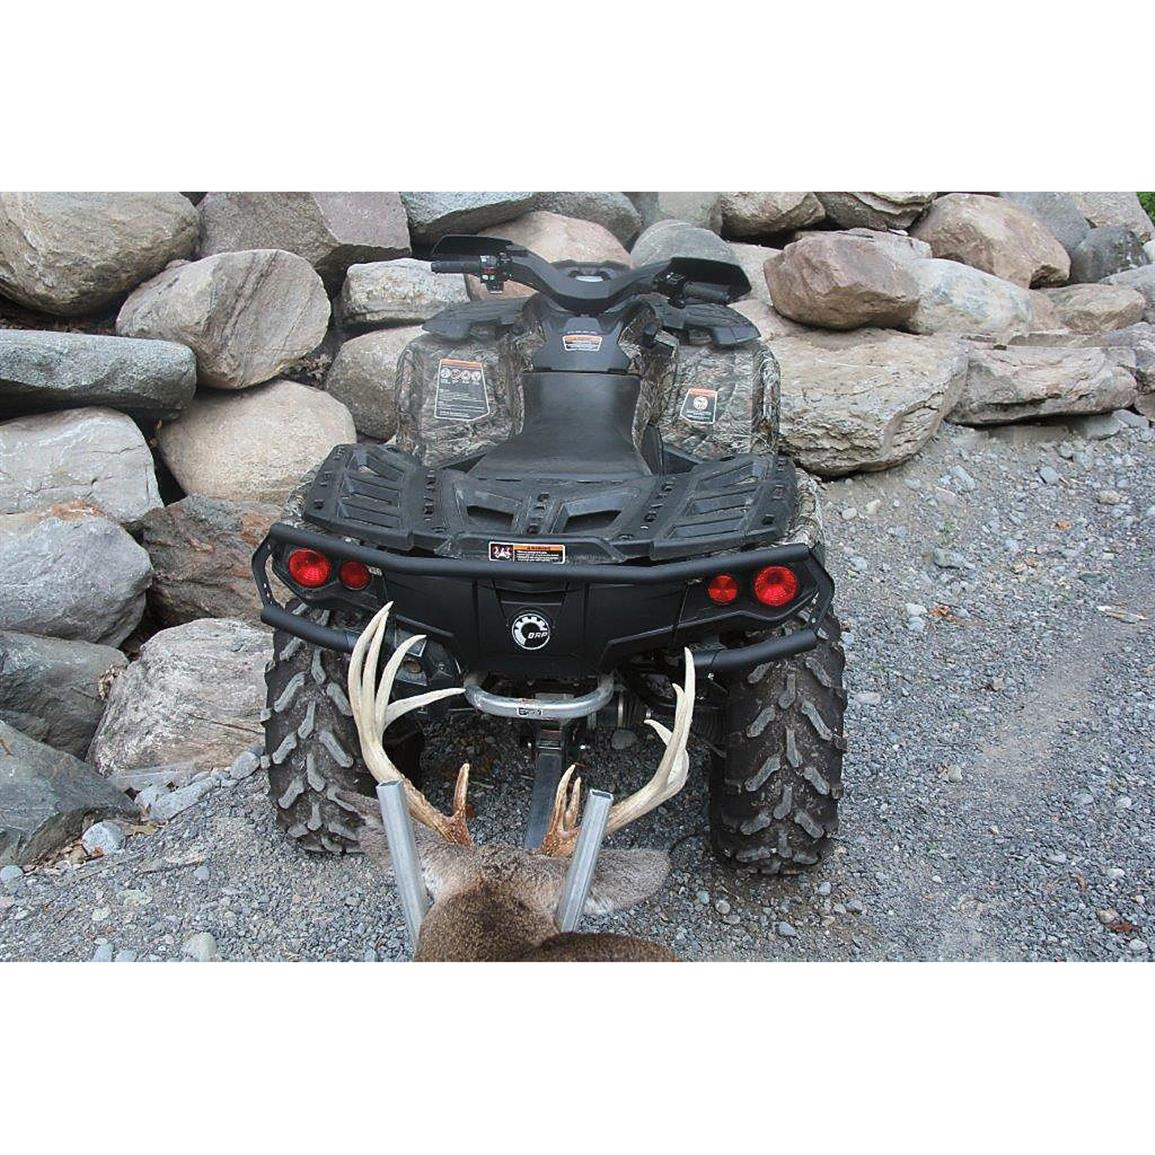 Durable aluminum welded design handles demanding field hunting situations